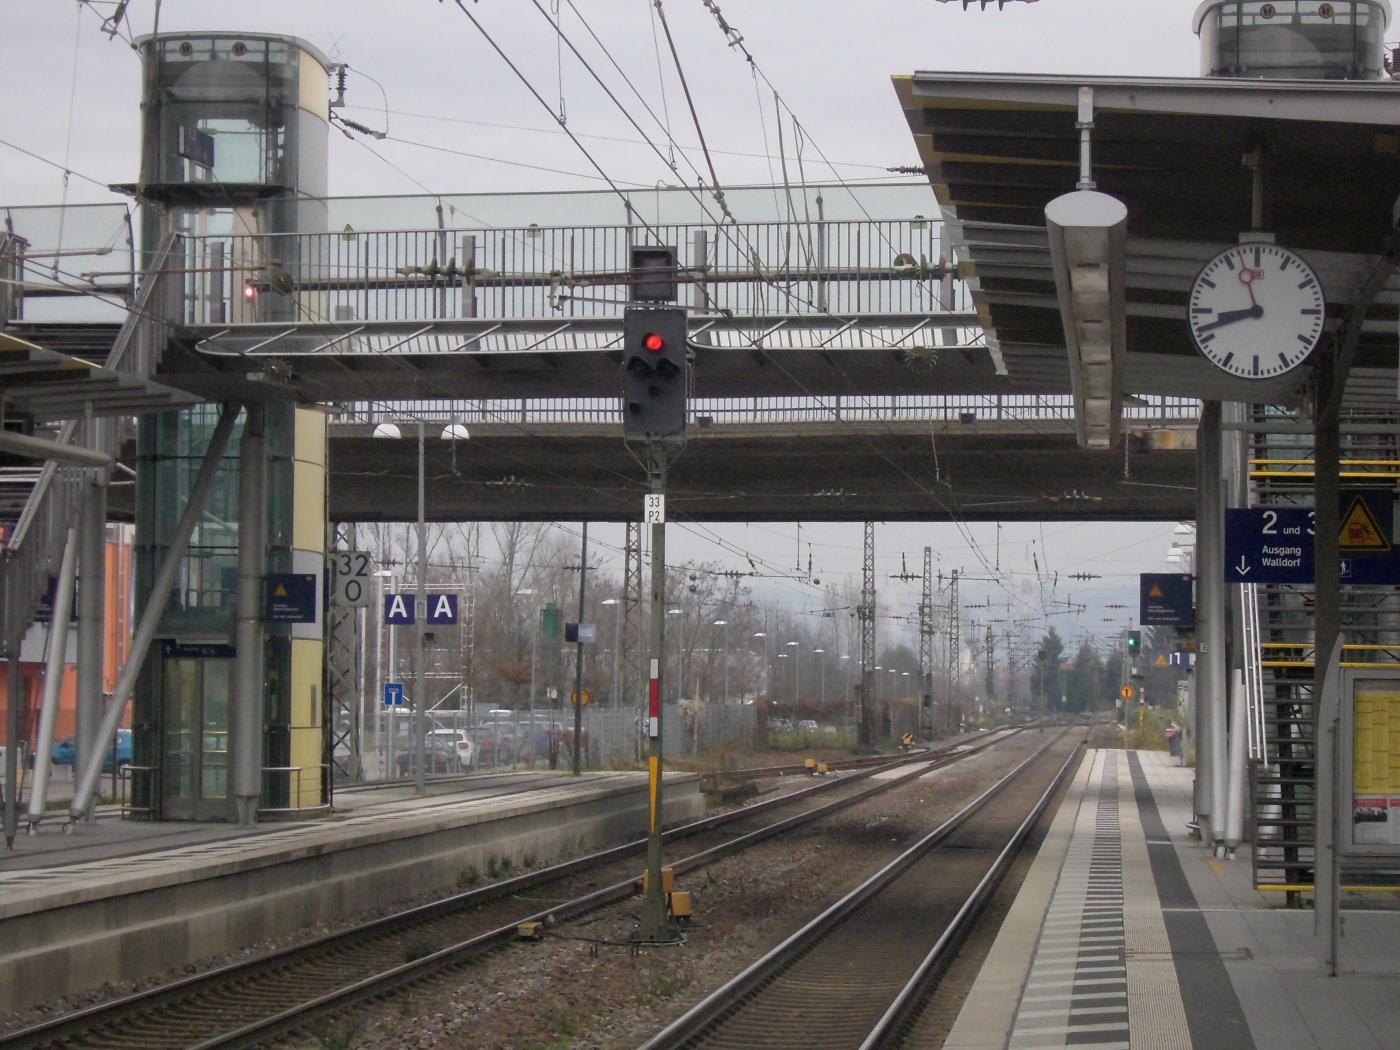 Jehovah's Witnesses like to stand at Walldorf-Wiesloch station